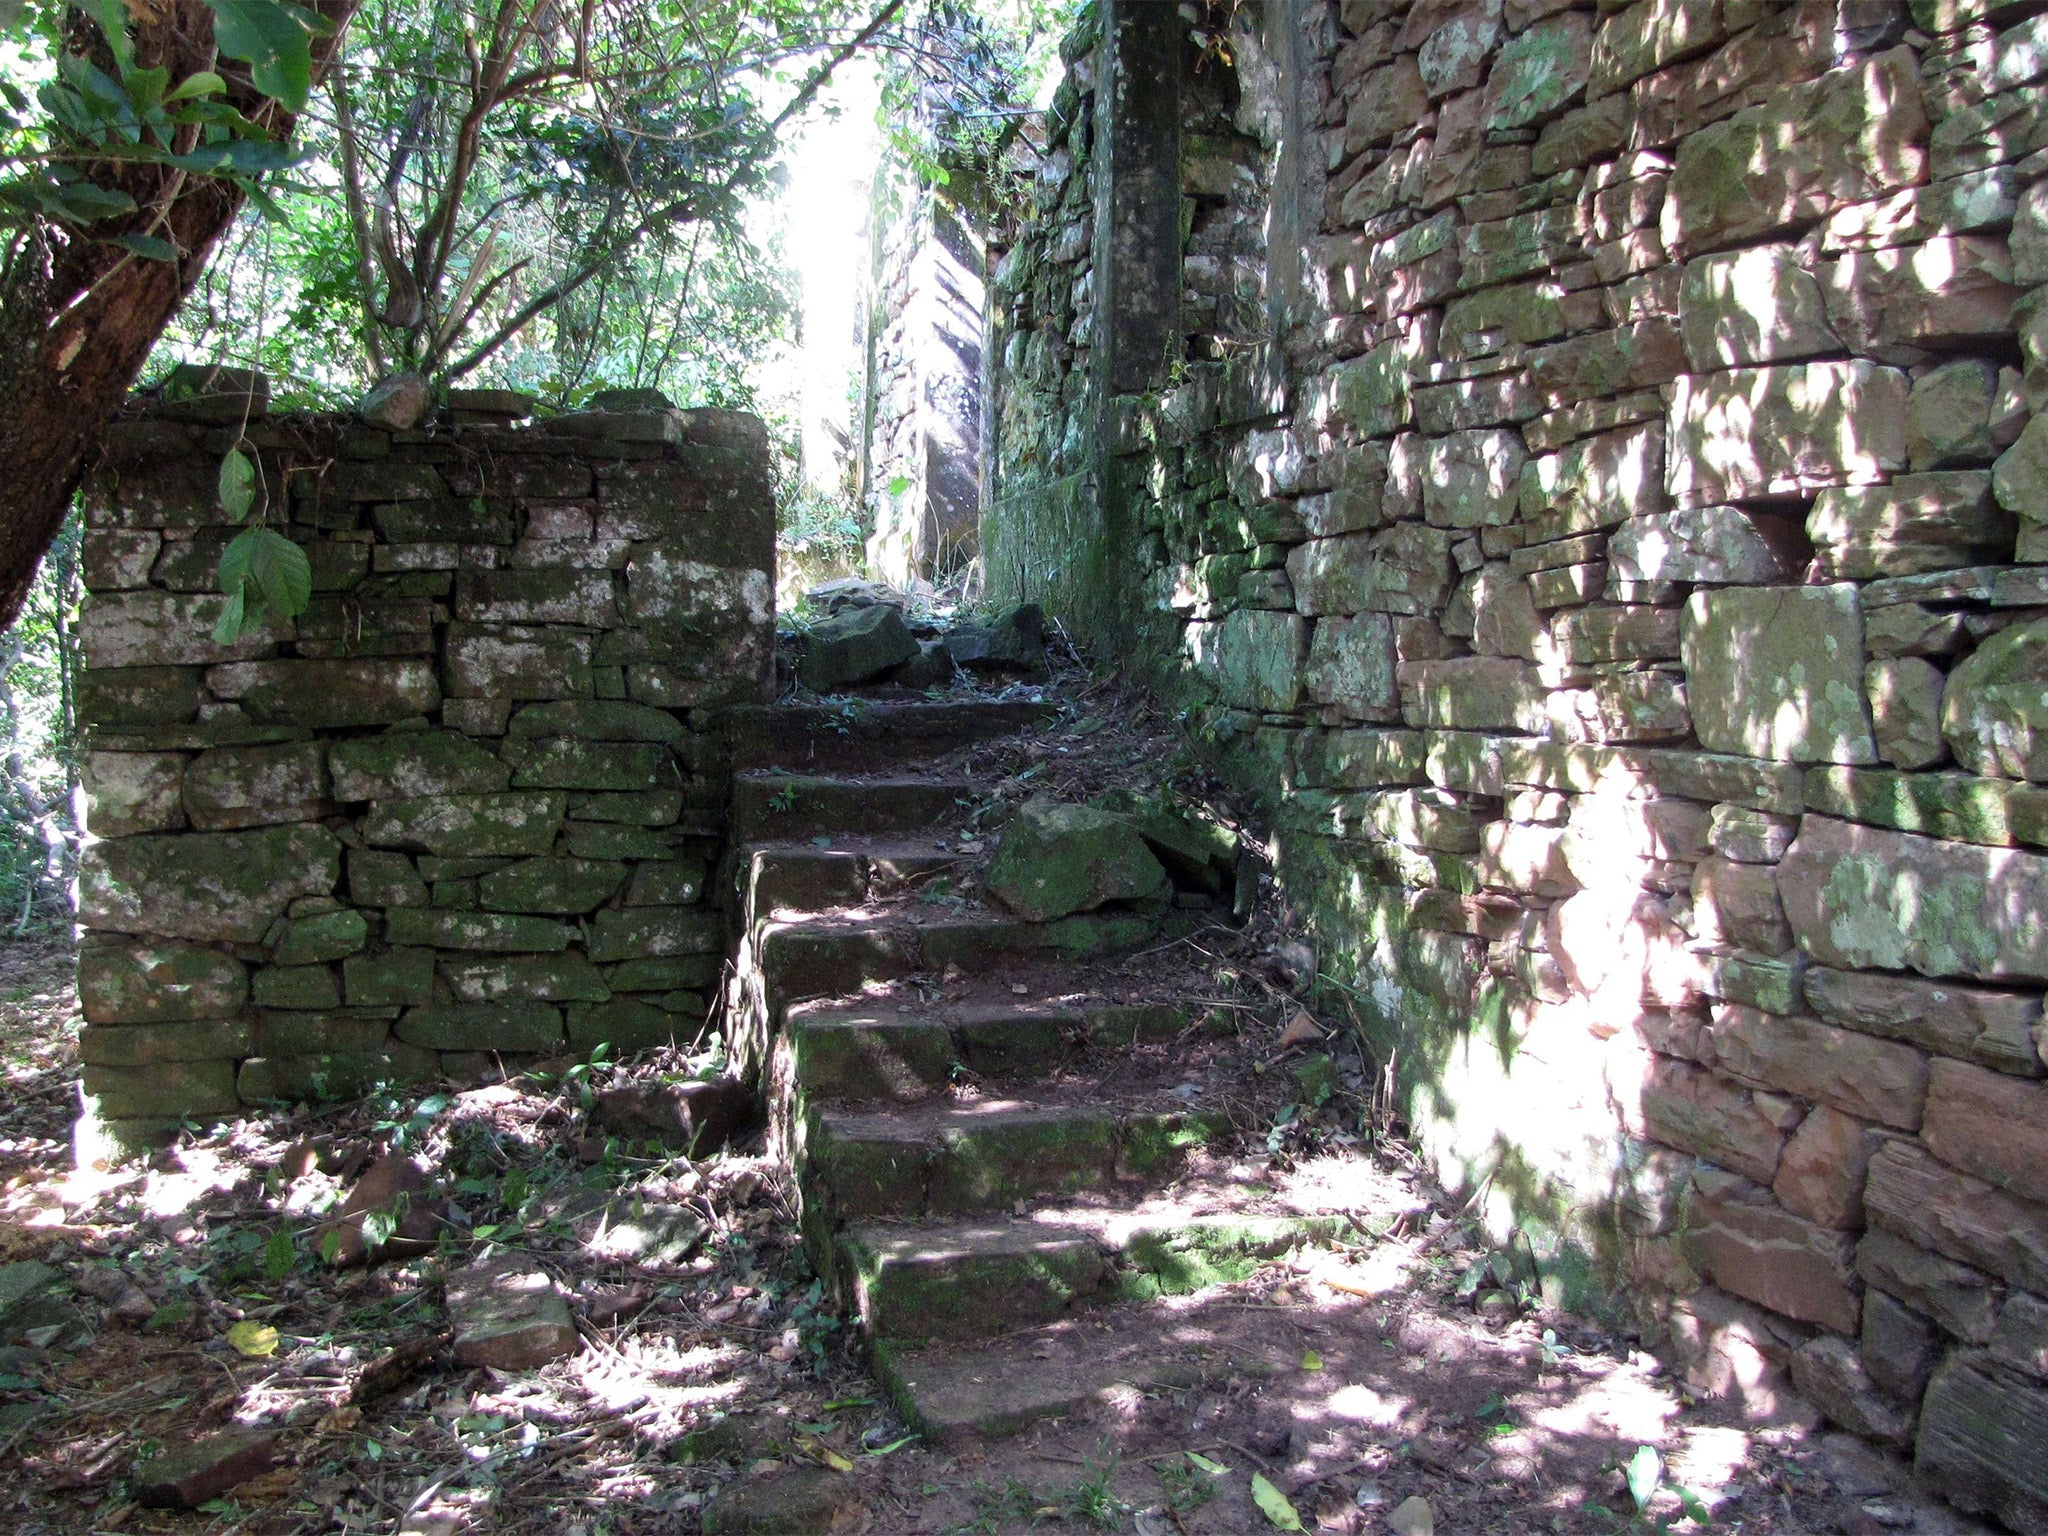 Mission to find Nazis' bunker hideout in the Argentinian jungle